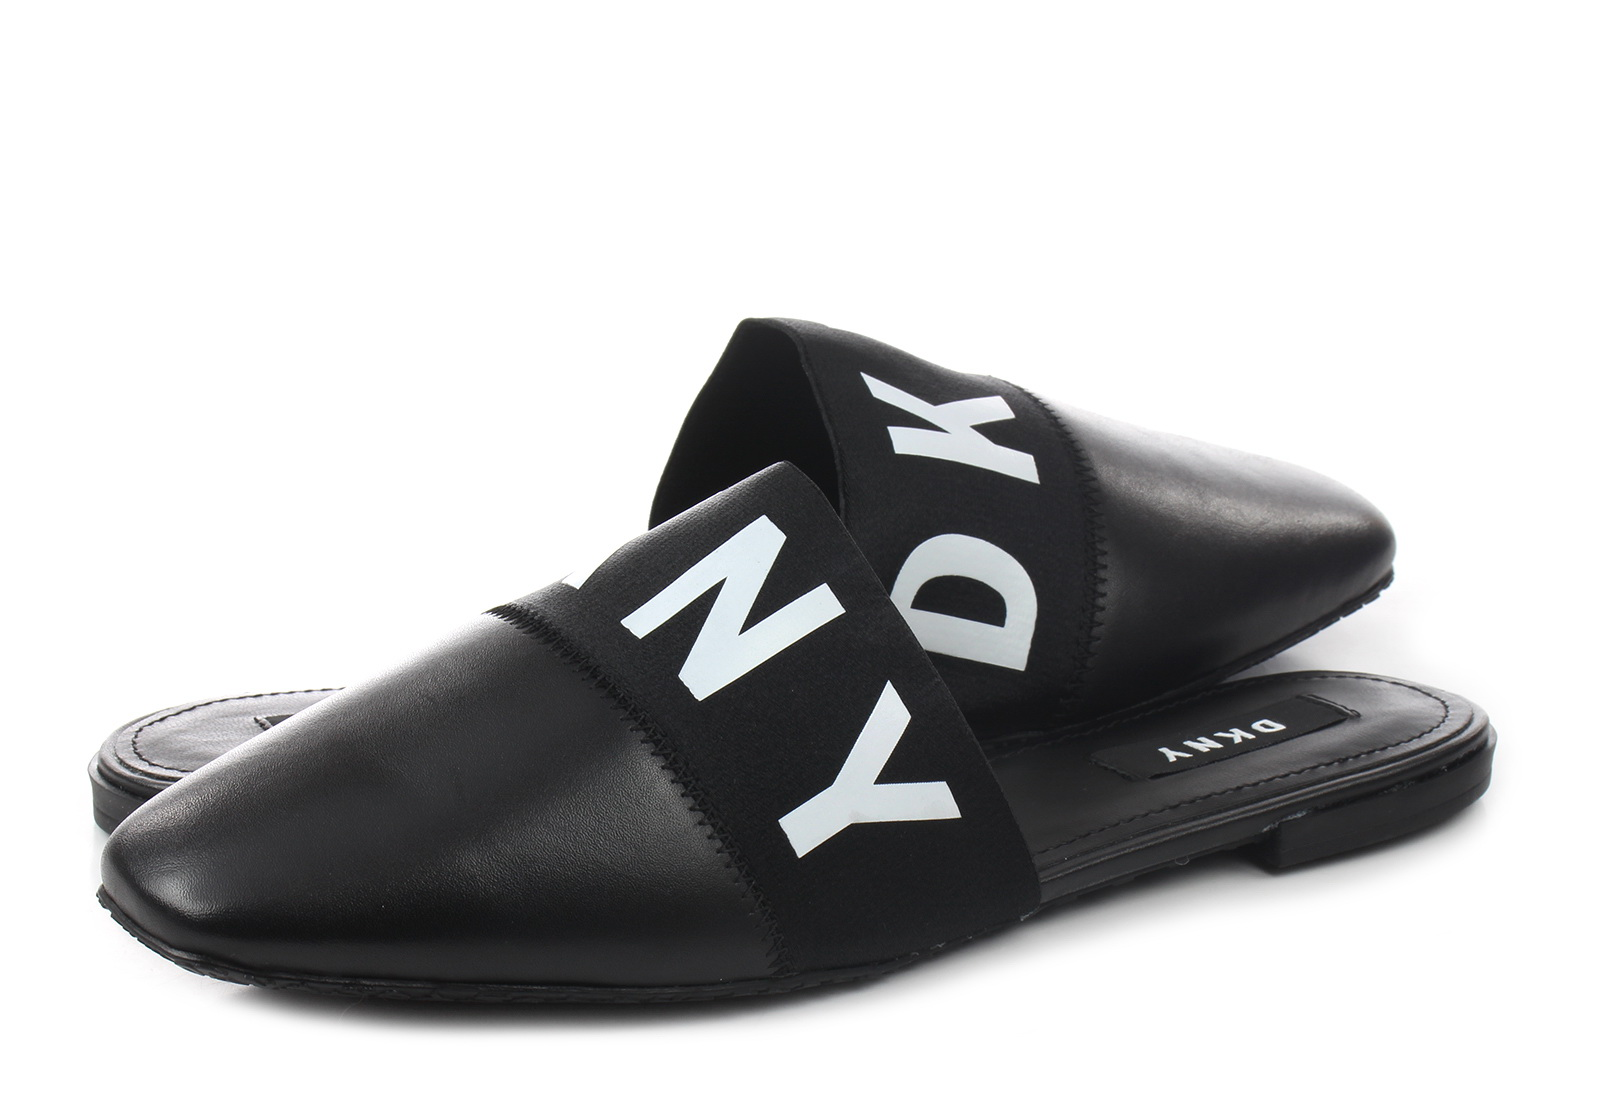 5e1c19516a2c DKNY Slippers - Dawn - K1933001-blk - Online shop for sneakers ...